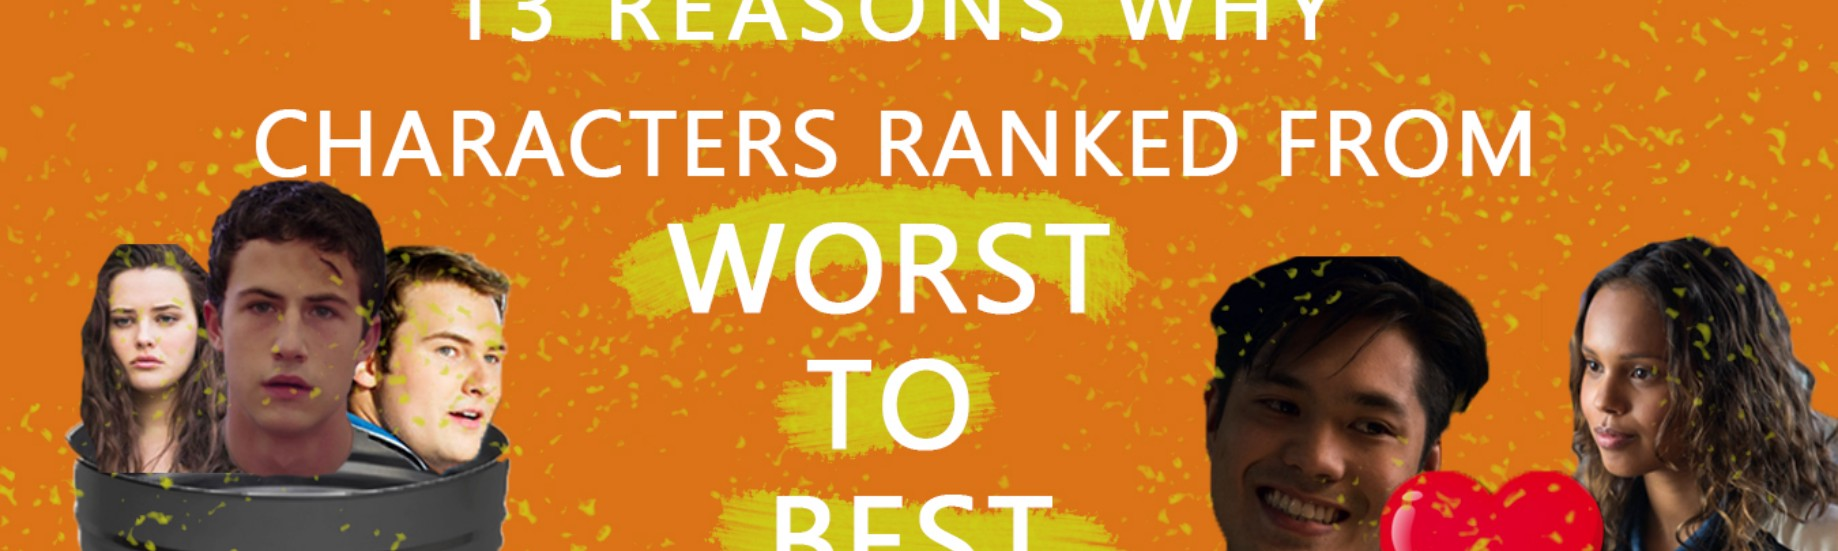 13 Reasons Why Characters Ranked from Worst to Best